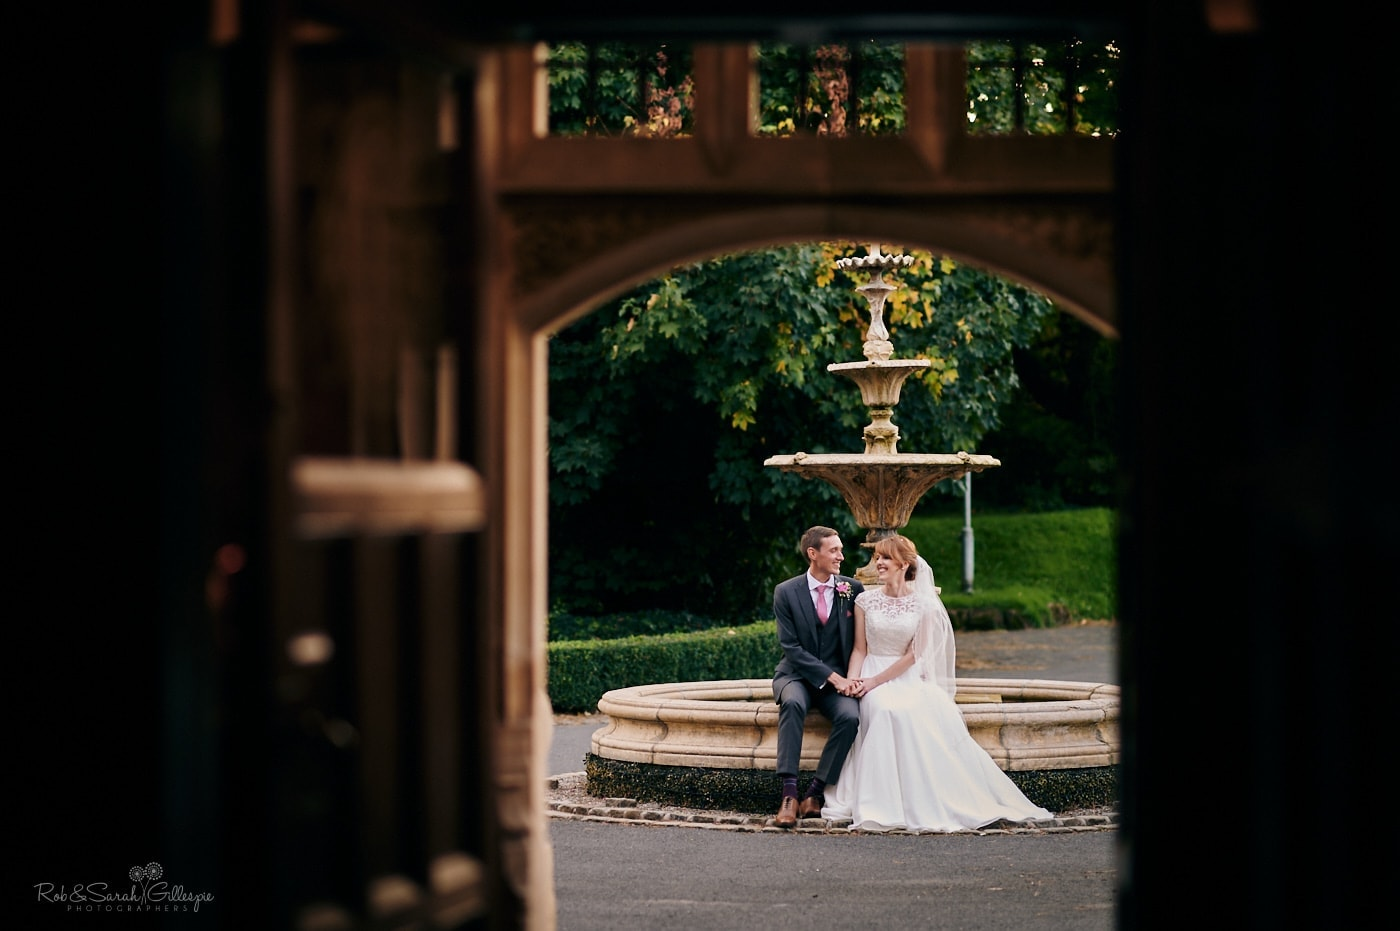 View from inside Pendrell Hall as bride and groom sit on edge of stone fountain